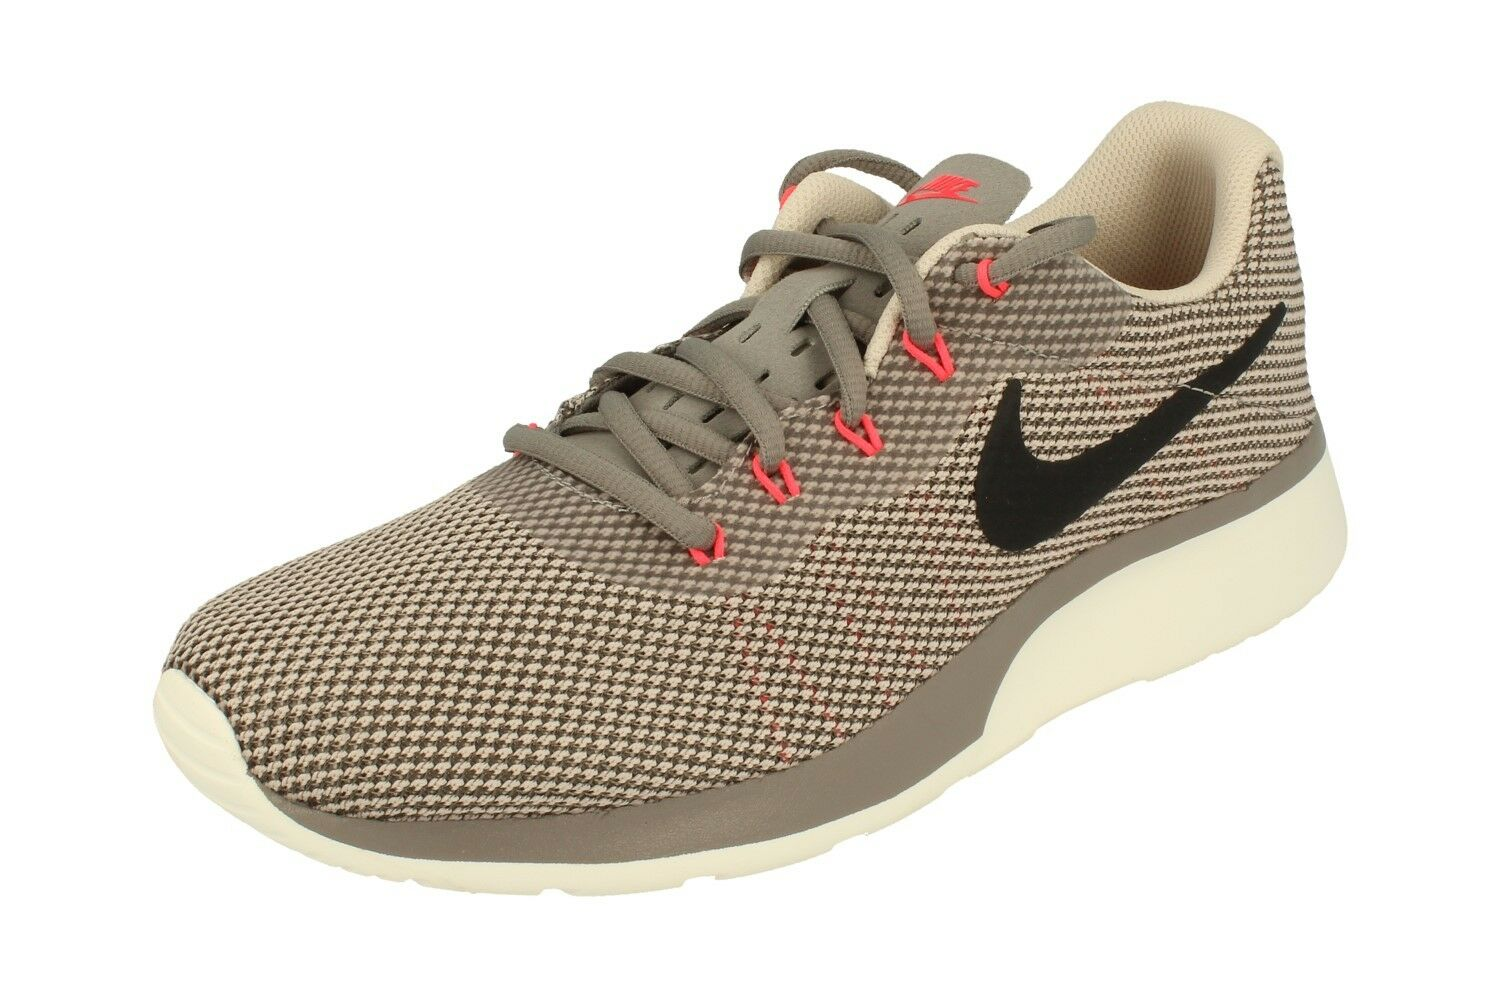 promo code 1f056 cb9e2 ... sale nike trainers tanjun racer mens running trainers nike 921669  sneakers shoes 003 60bf5e f5764 bc42a